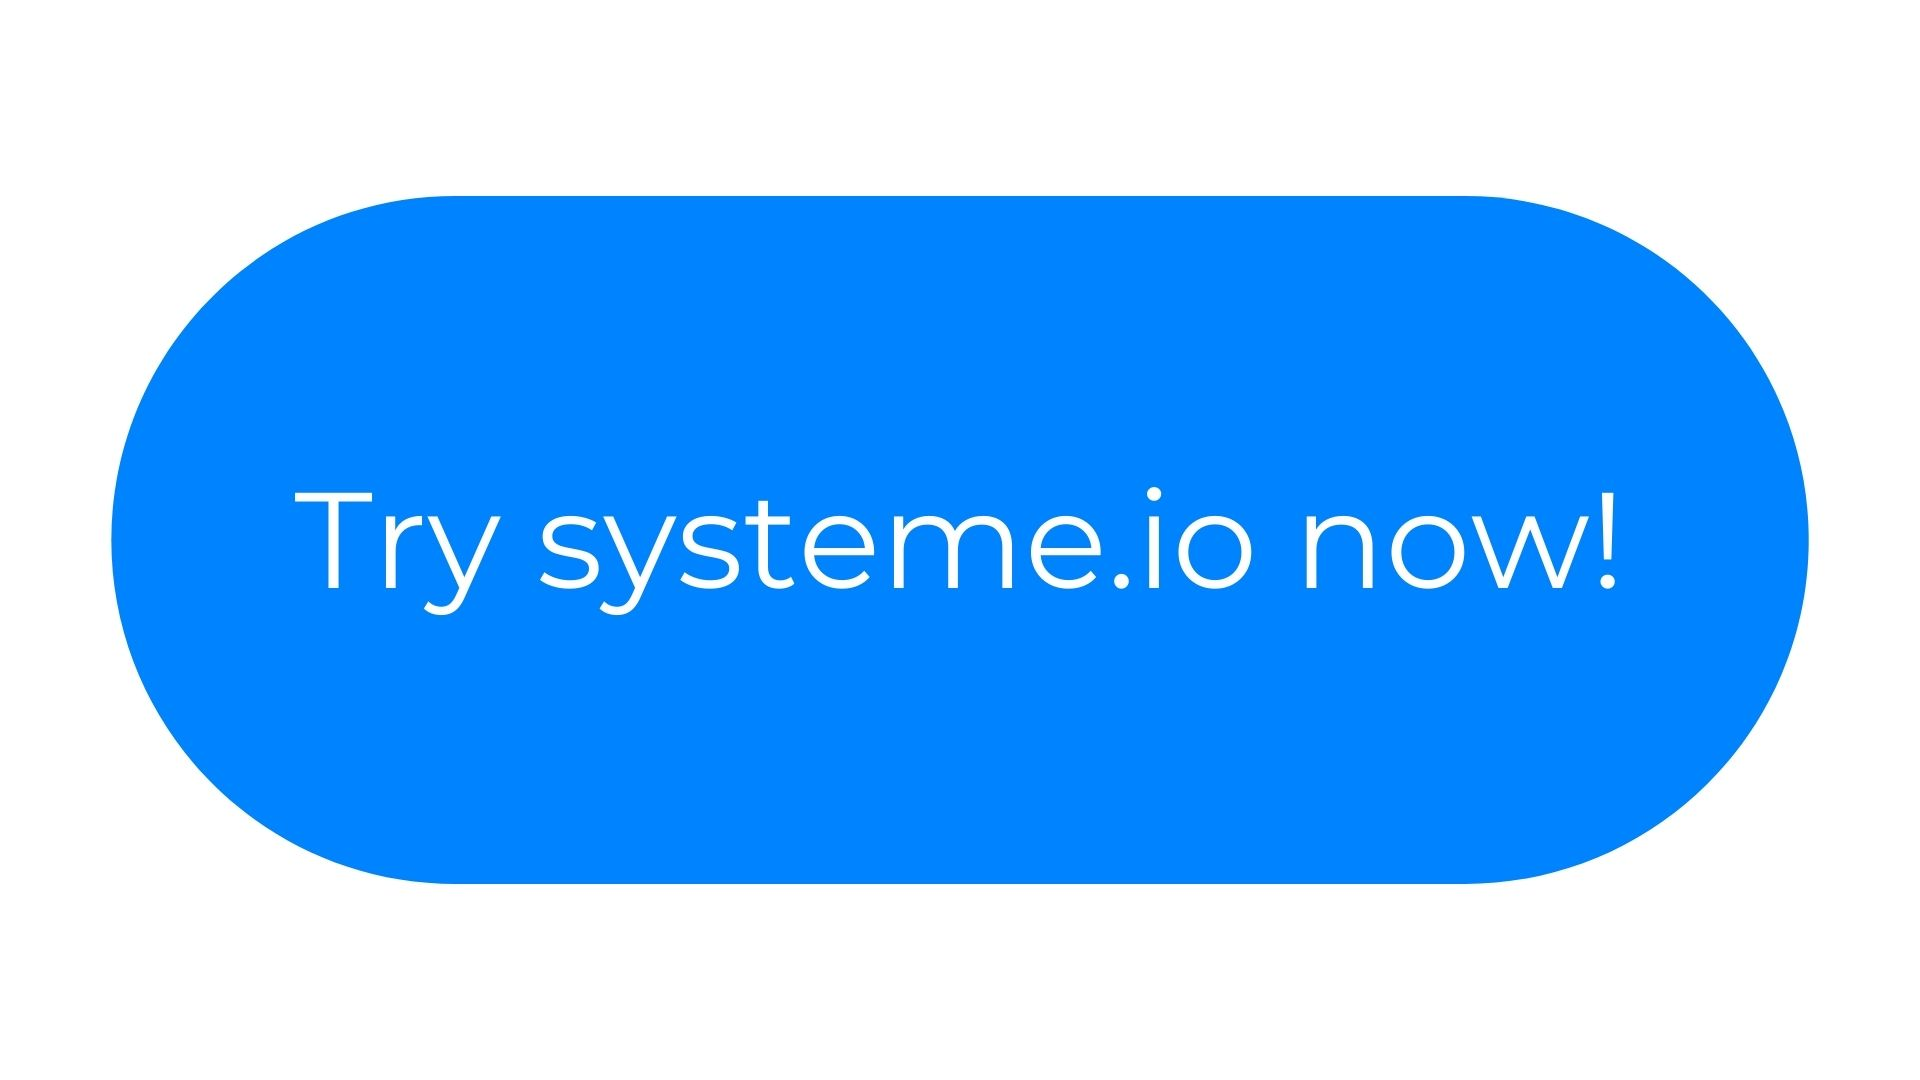 try systeme.io now